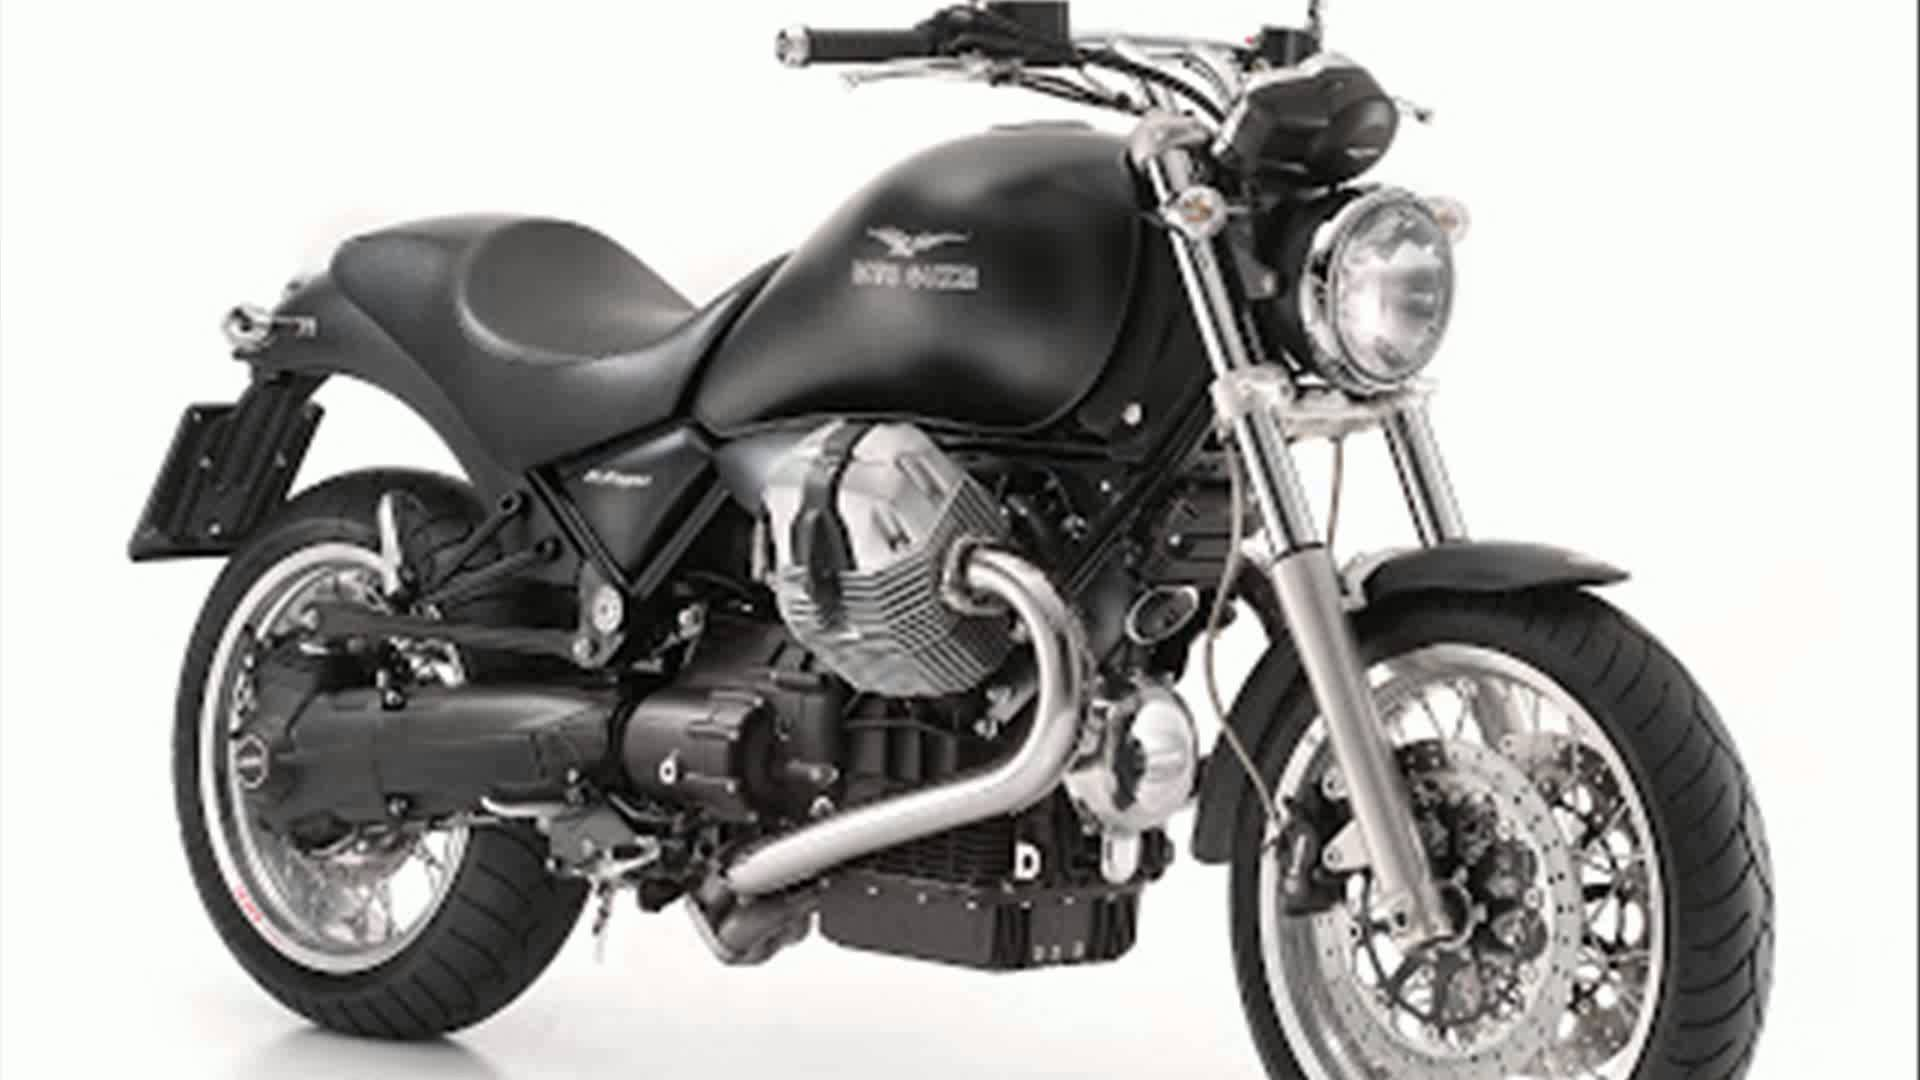 Moto Guzzi Bellagio images #109755